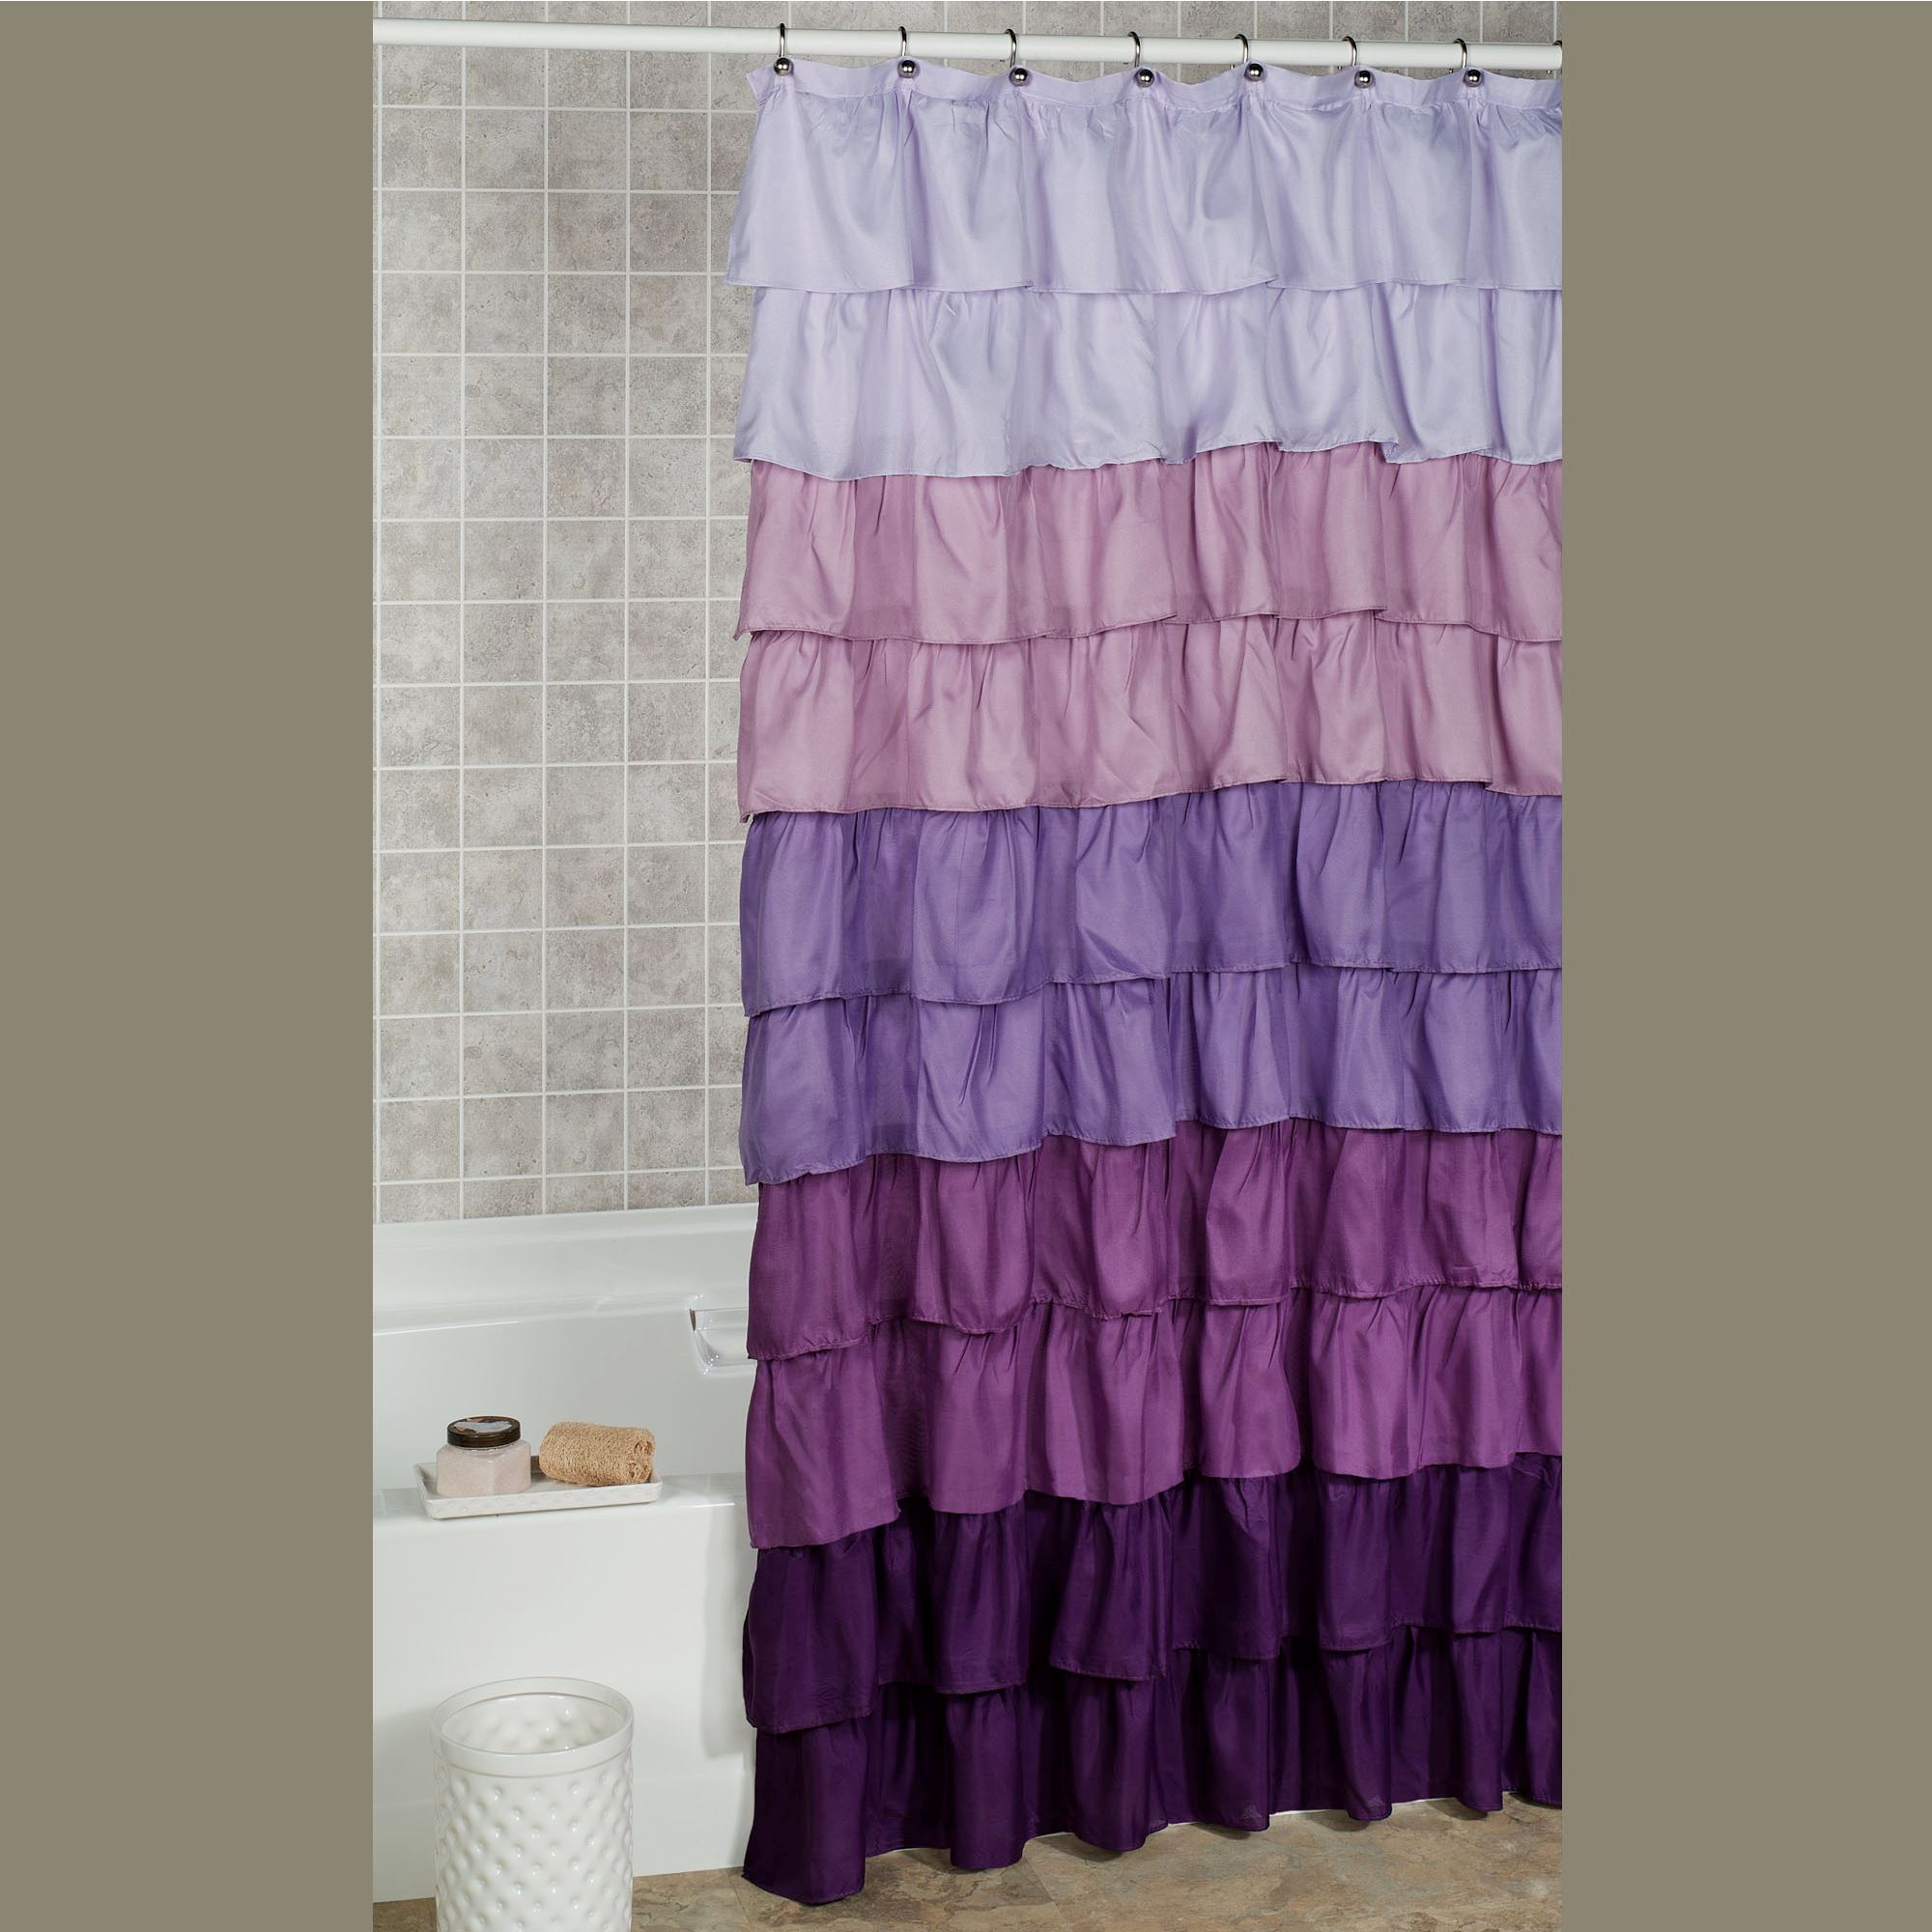 Lavender Shower Curtains Maribella Lavender Ombre Ruffled Shower Curtain